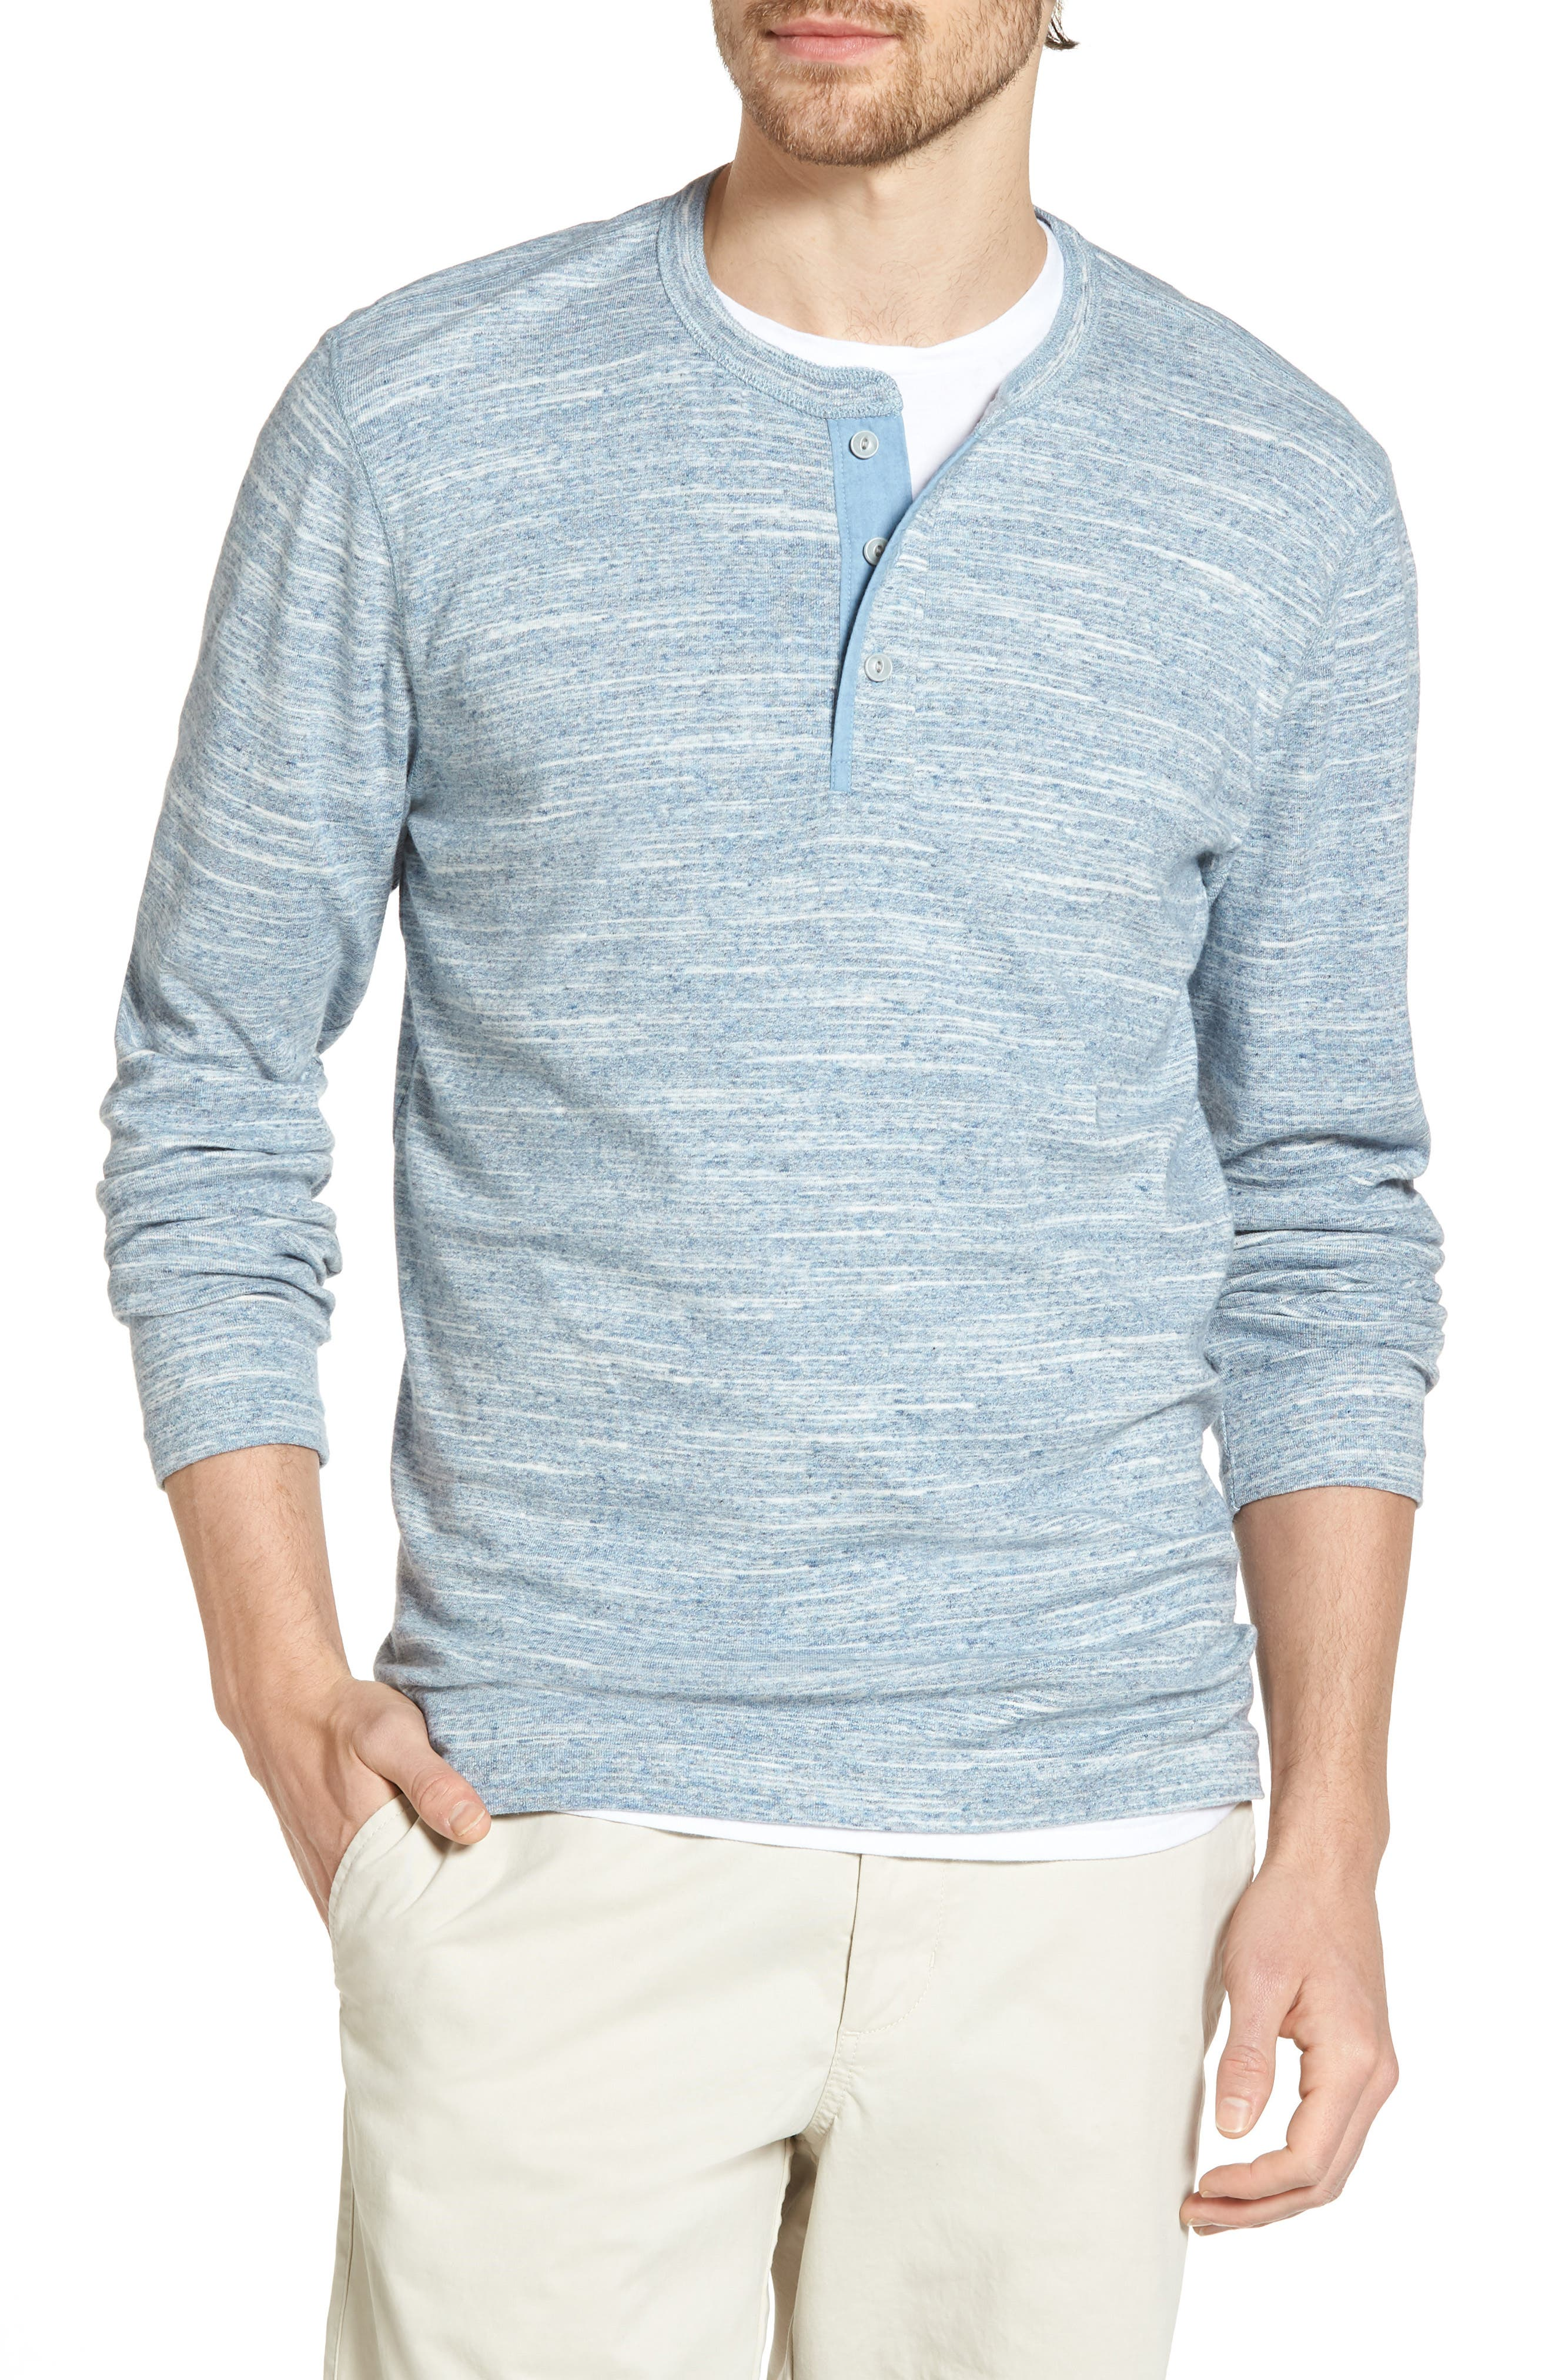 Alternate Image 1 Selected - 1901 Long Sleeve Henley